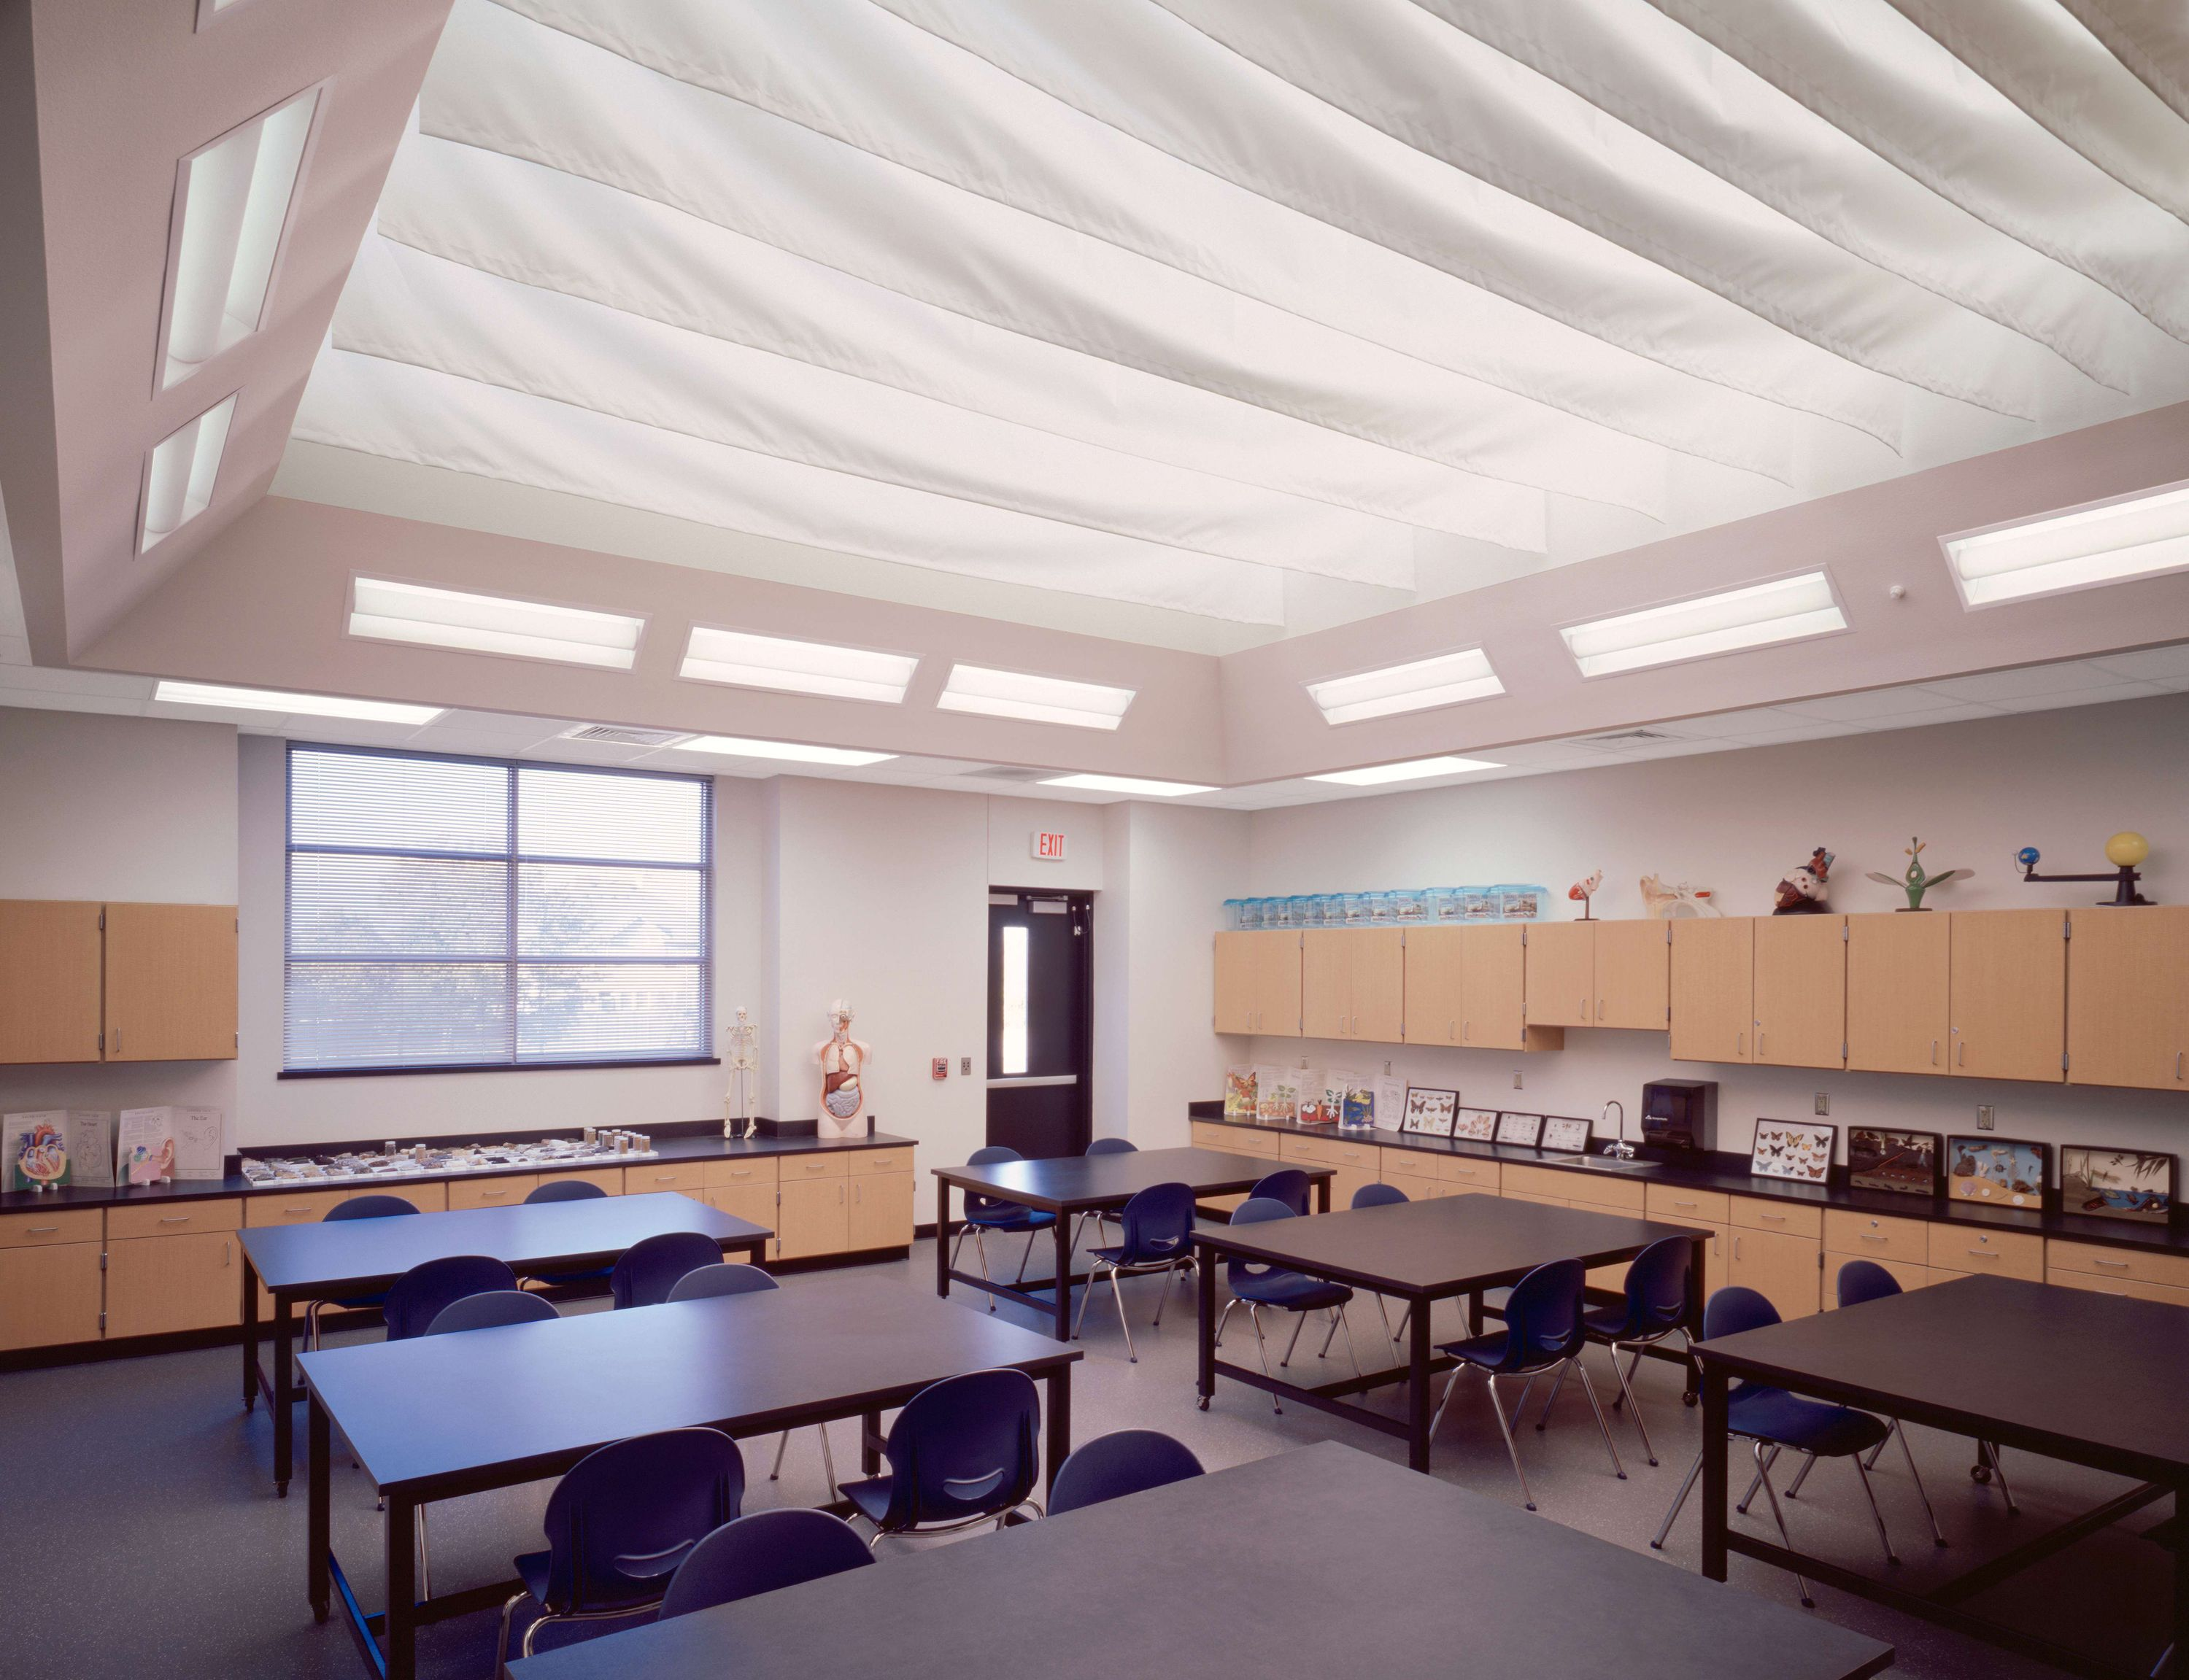 Classroom Design Project : Elementary science classroom layout hd tv lab